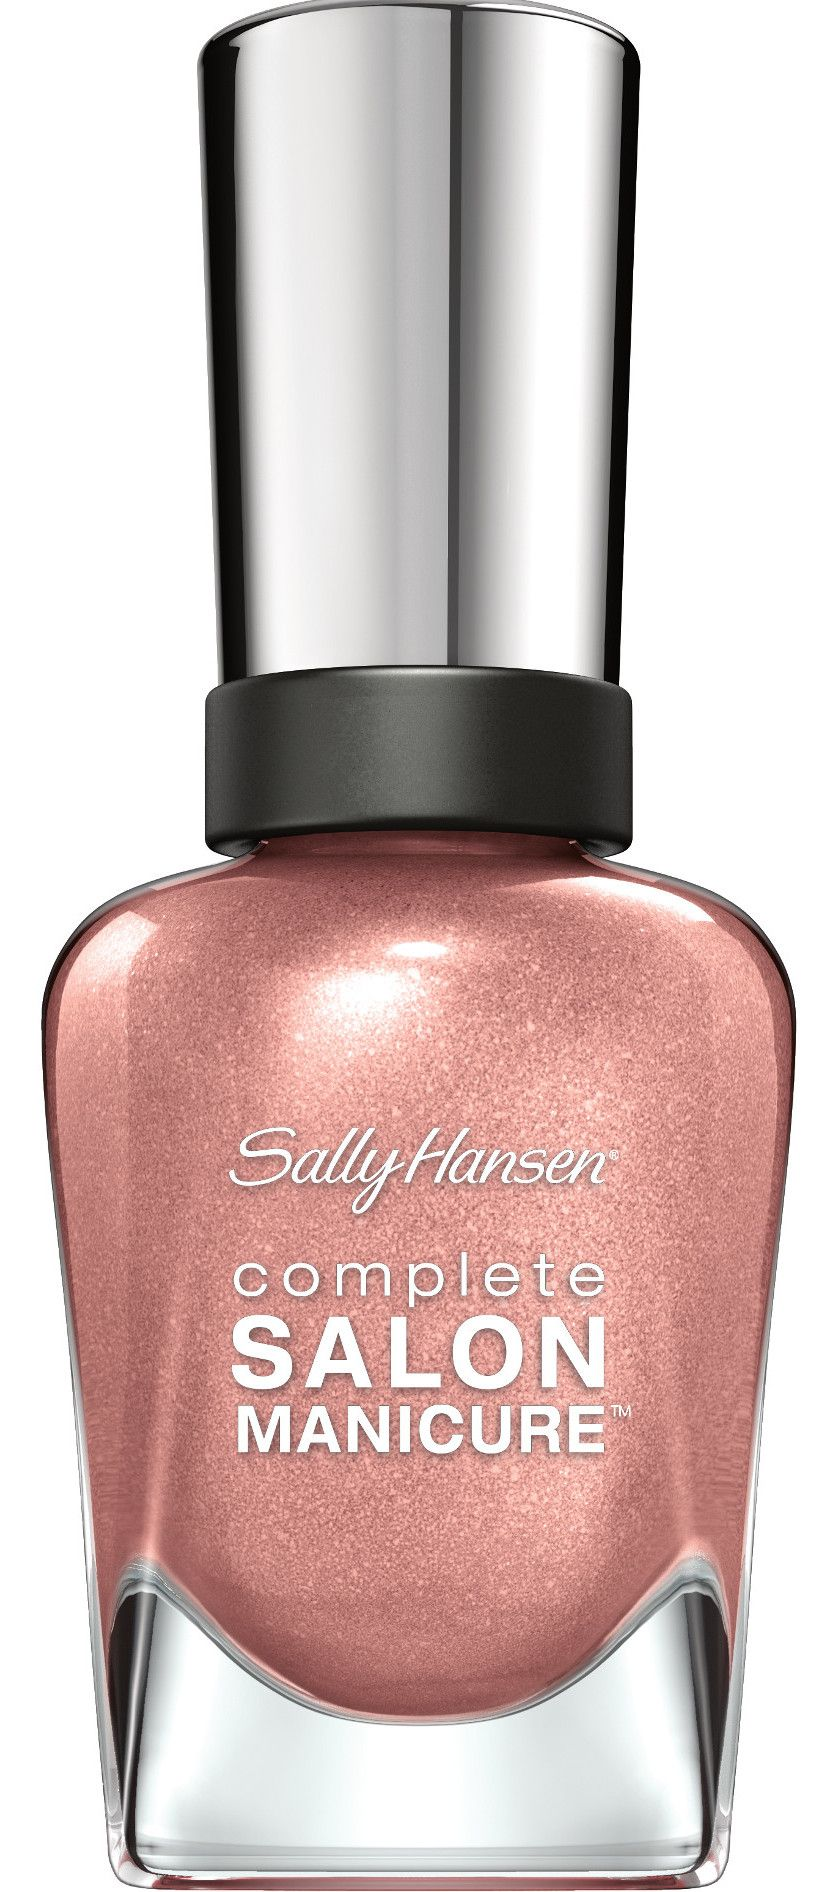 Sally Hansen Complete Salon Manicure - Gold Roses | Metal ...